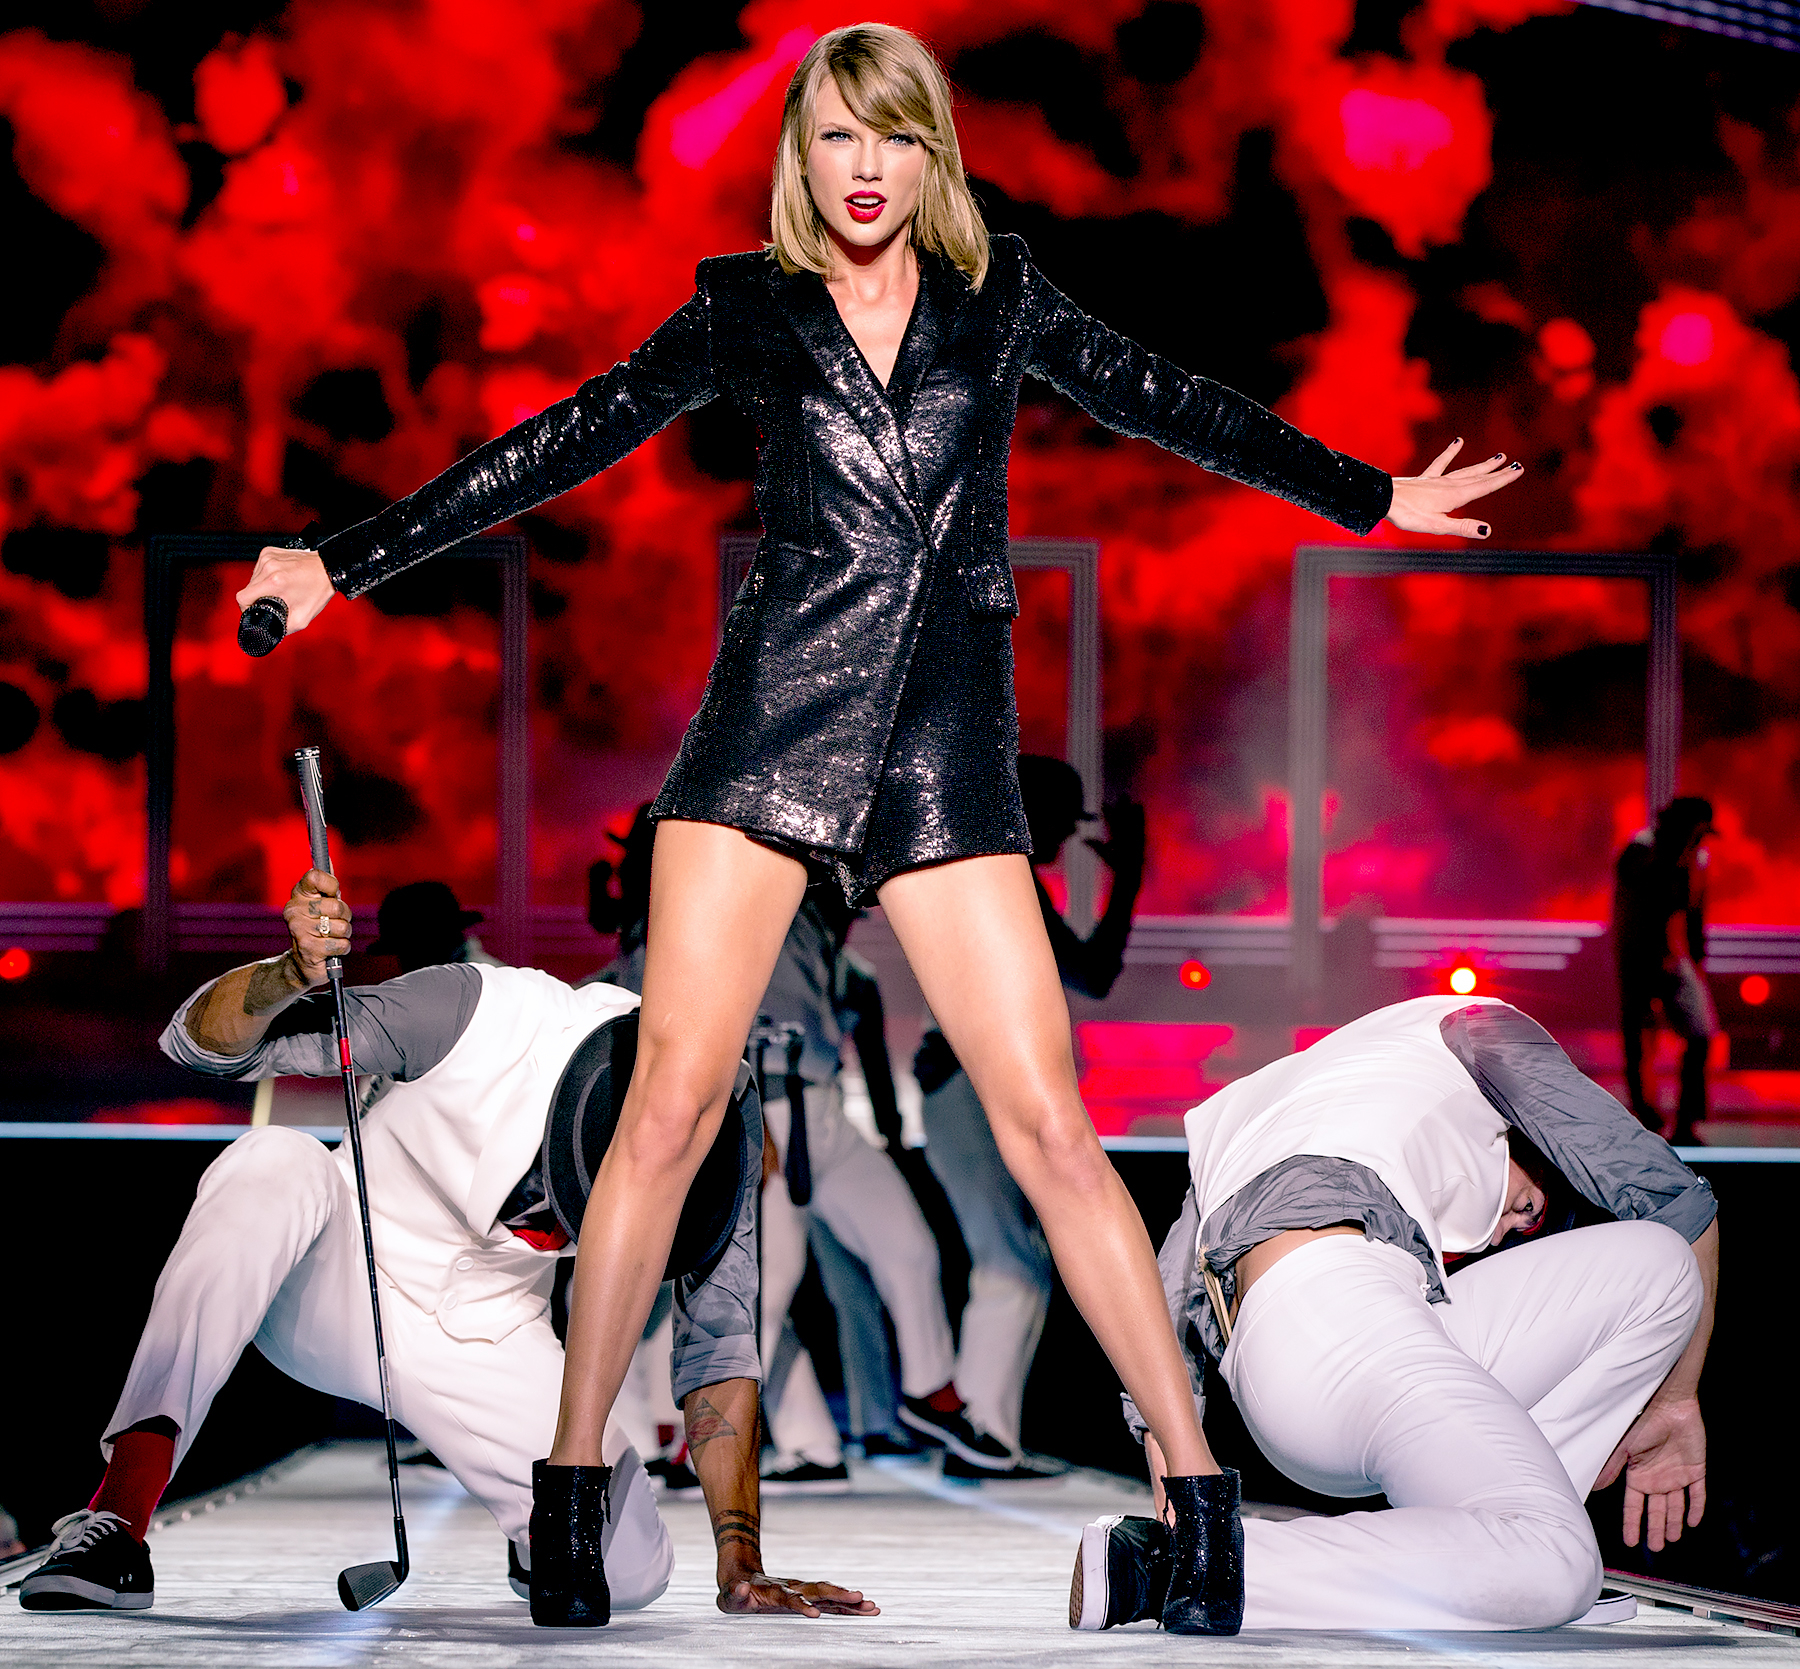 Taylor Swift performs on stage during